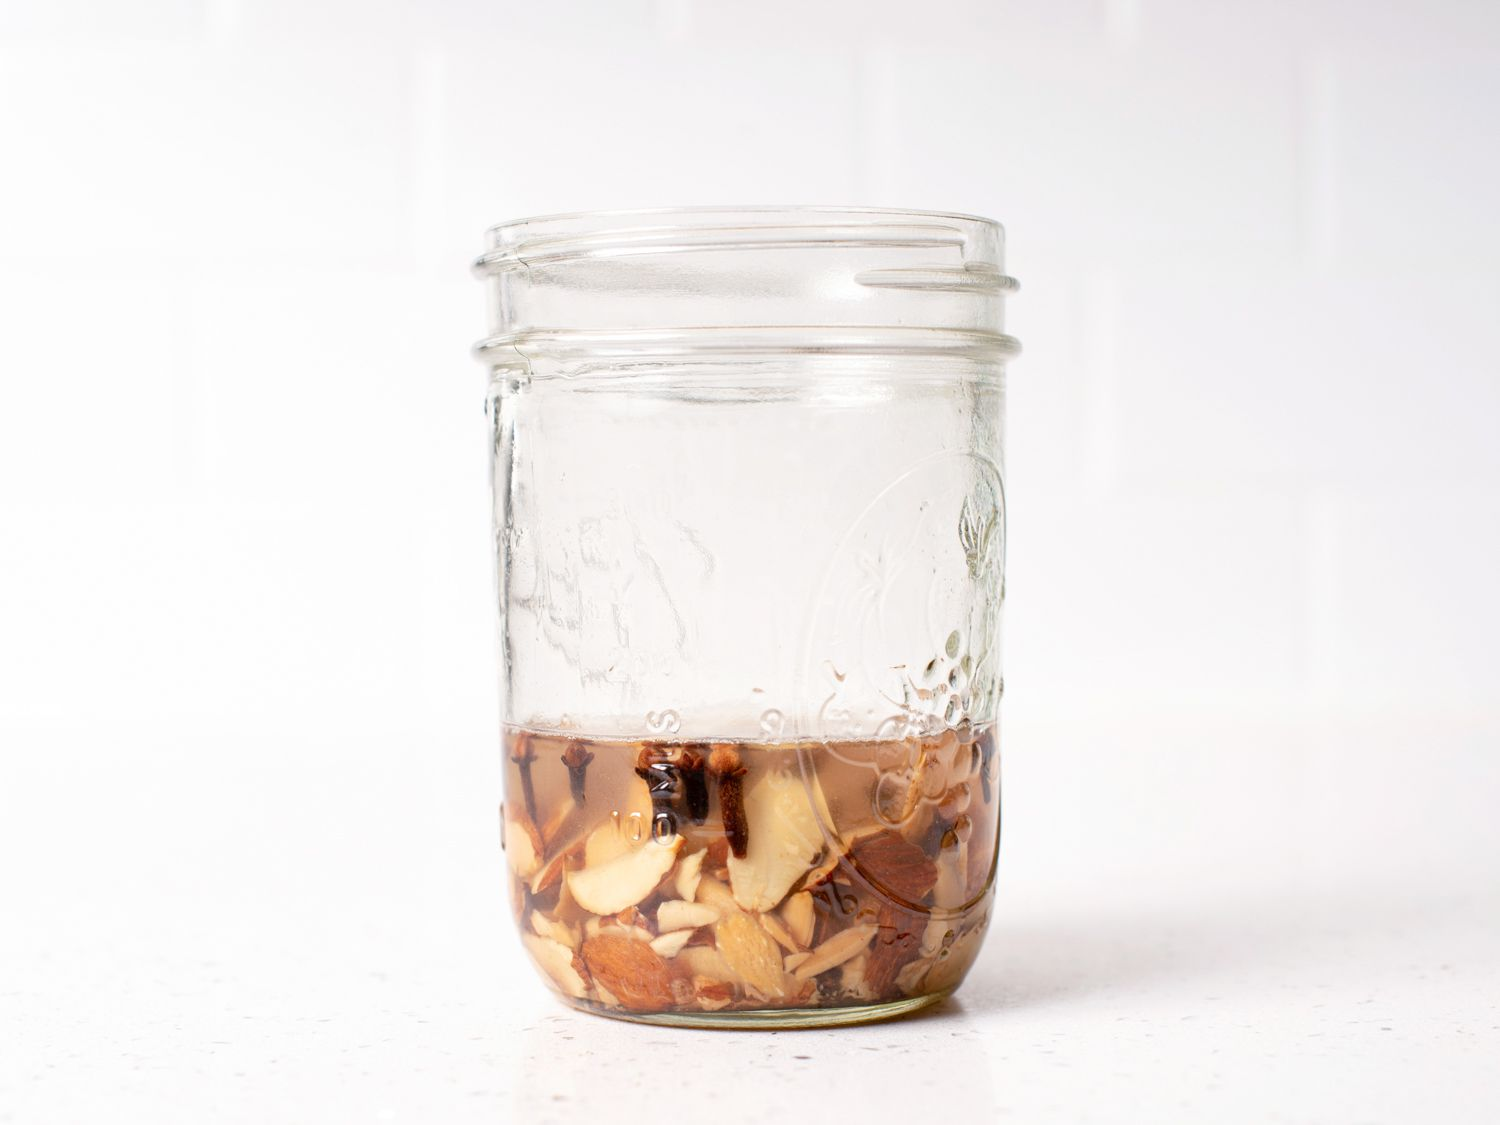 toasted almonds, cloves, and rum in a jar, ready to steep